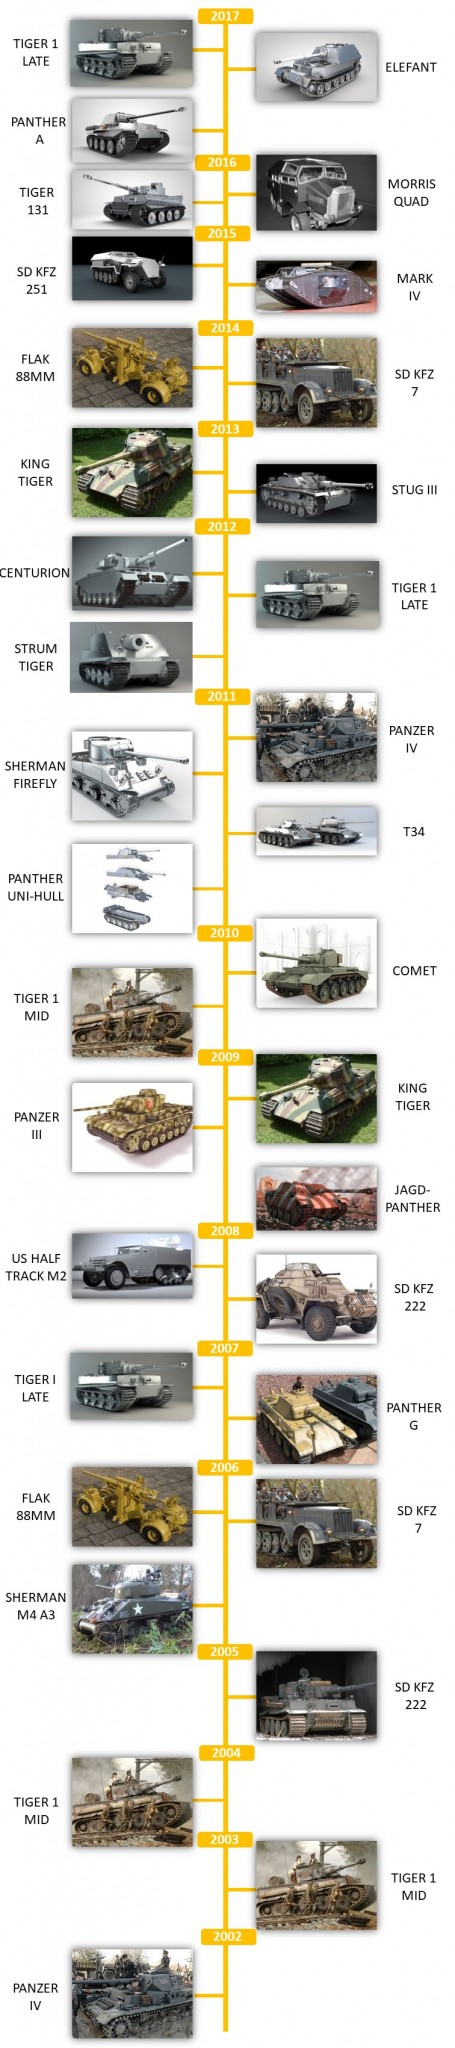 Armortek kits released over the years